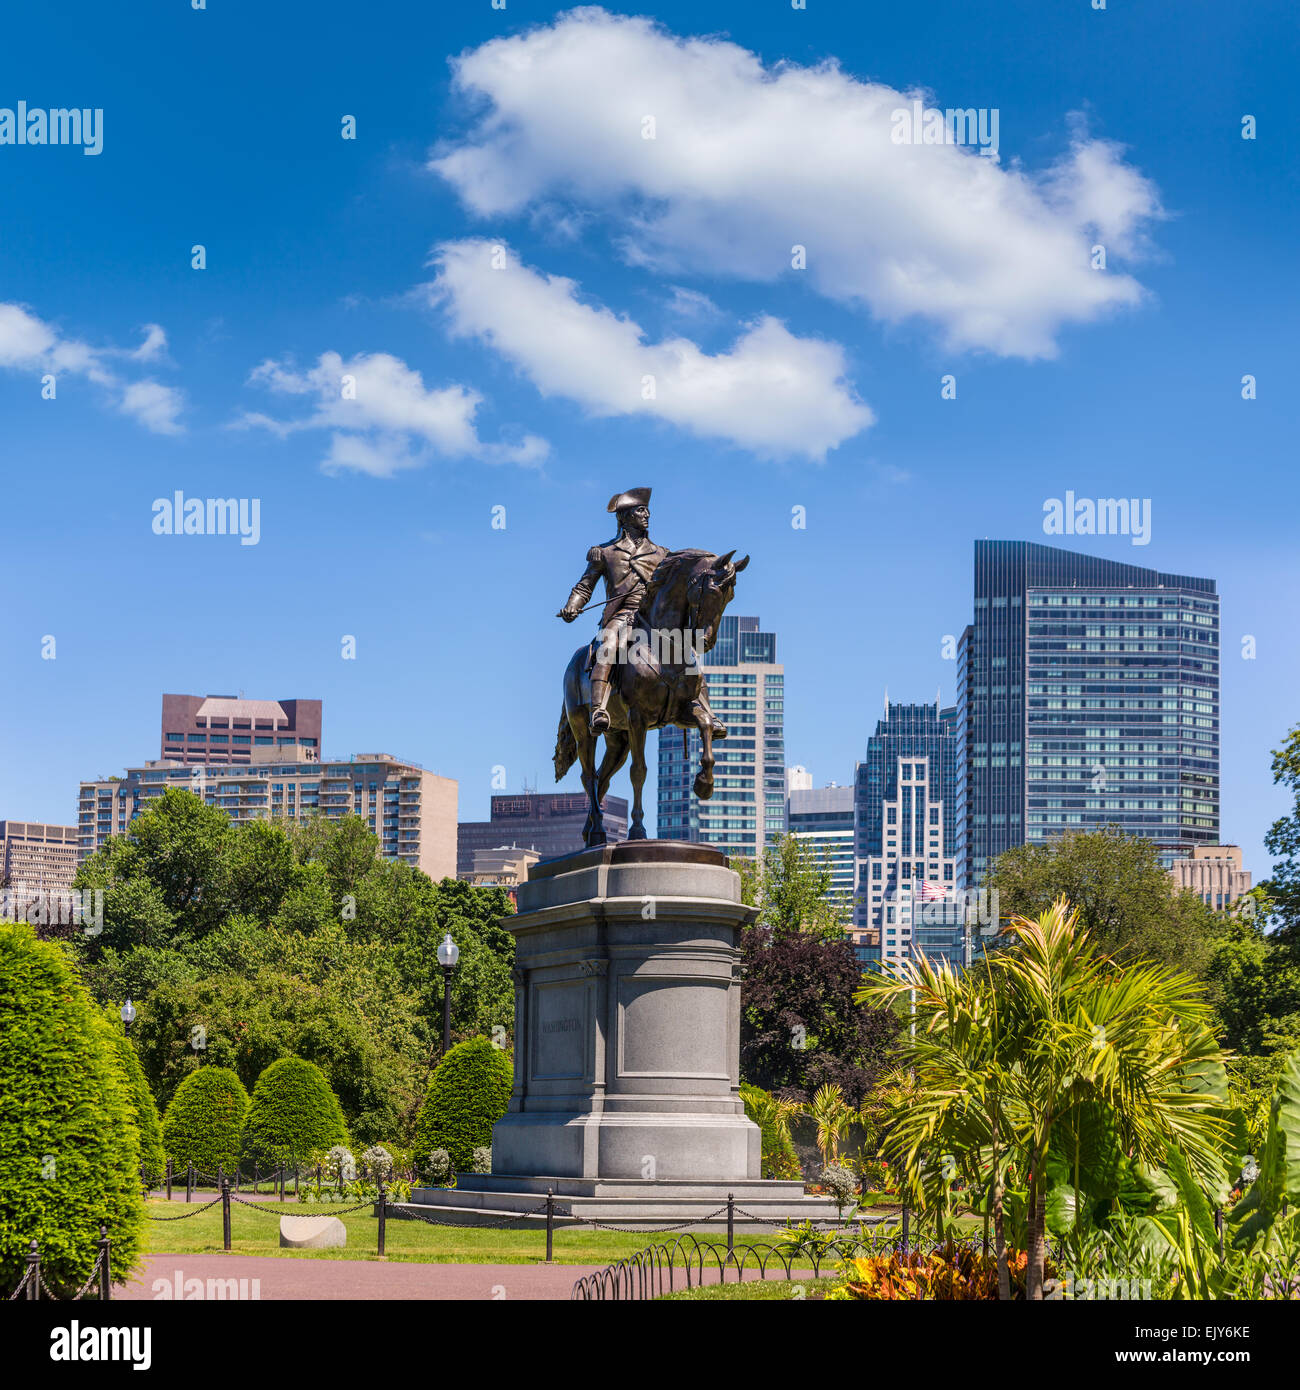 Boston Common George Washington Monument en Massachusetts EE.UU. Imagen De Stock